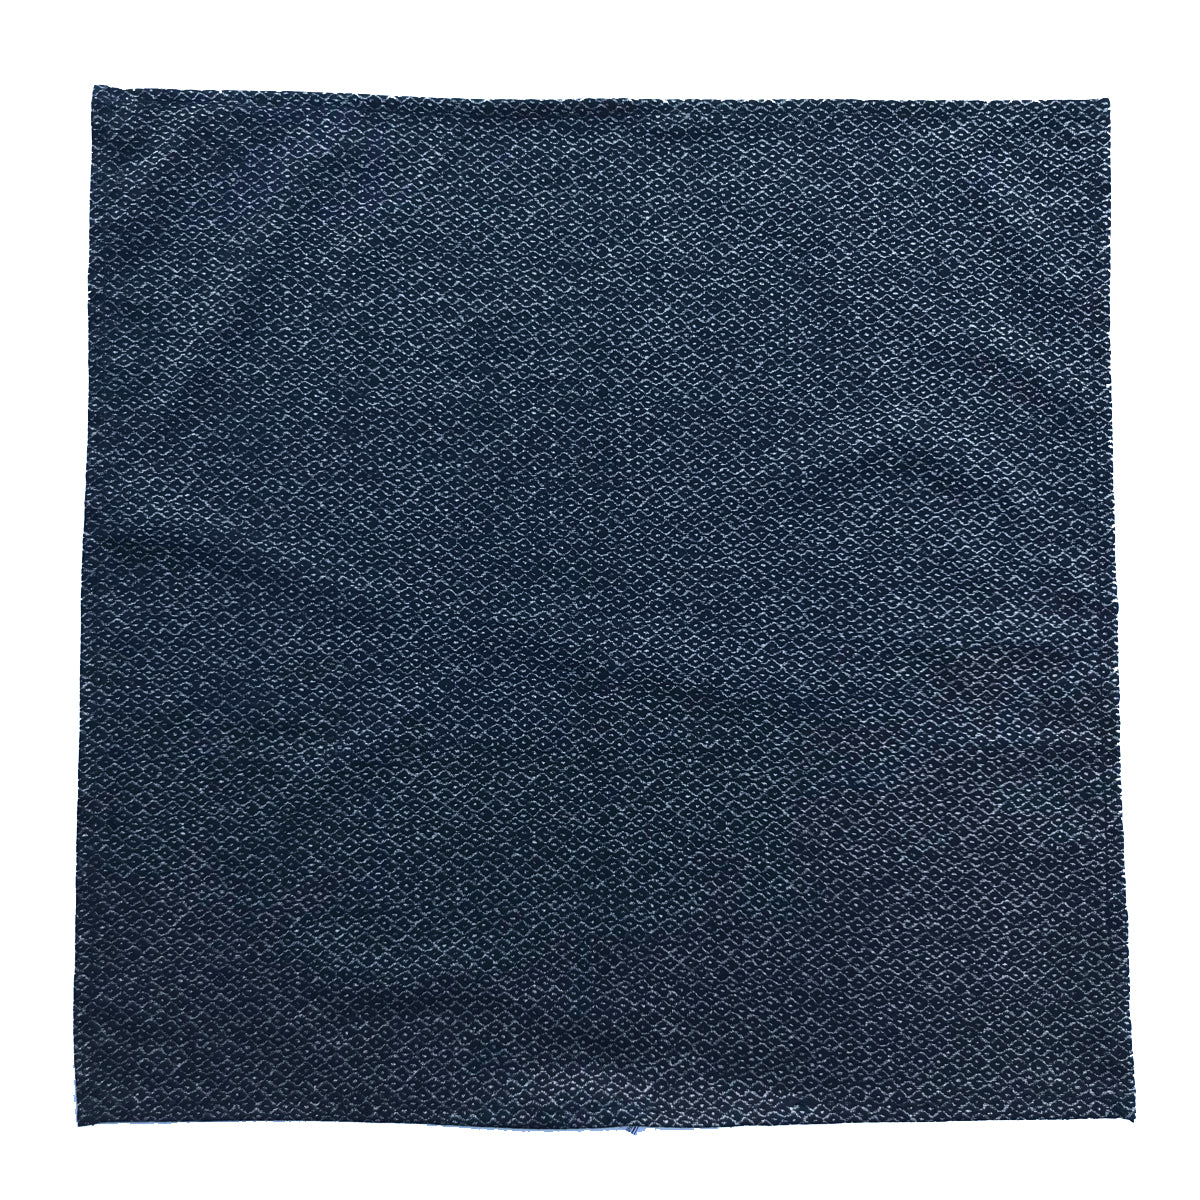 "Japanese Nara Cotton Canvas Indigo Handkerchief 27.5 x 27.5 ""TREL"""